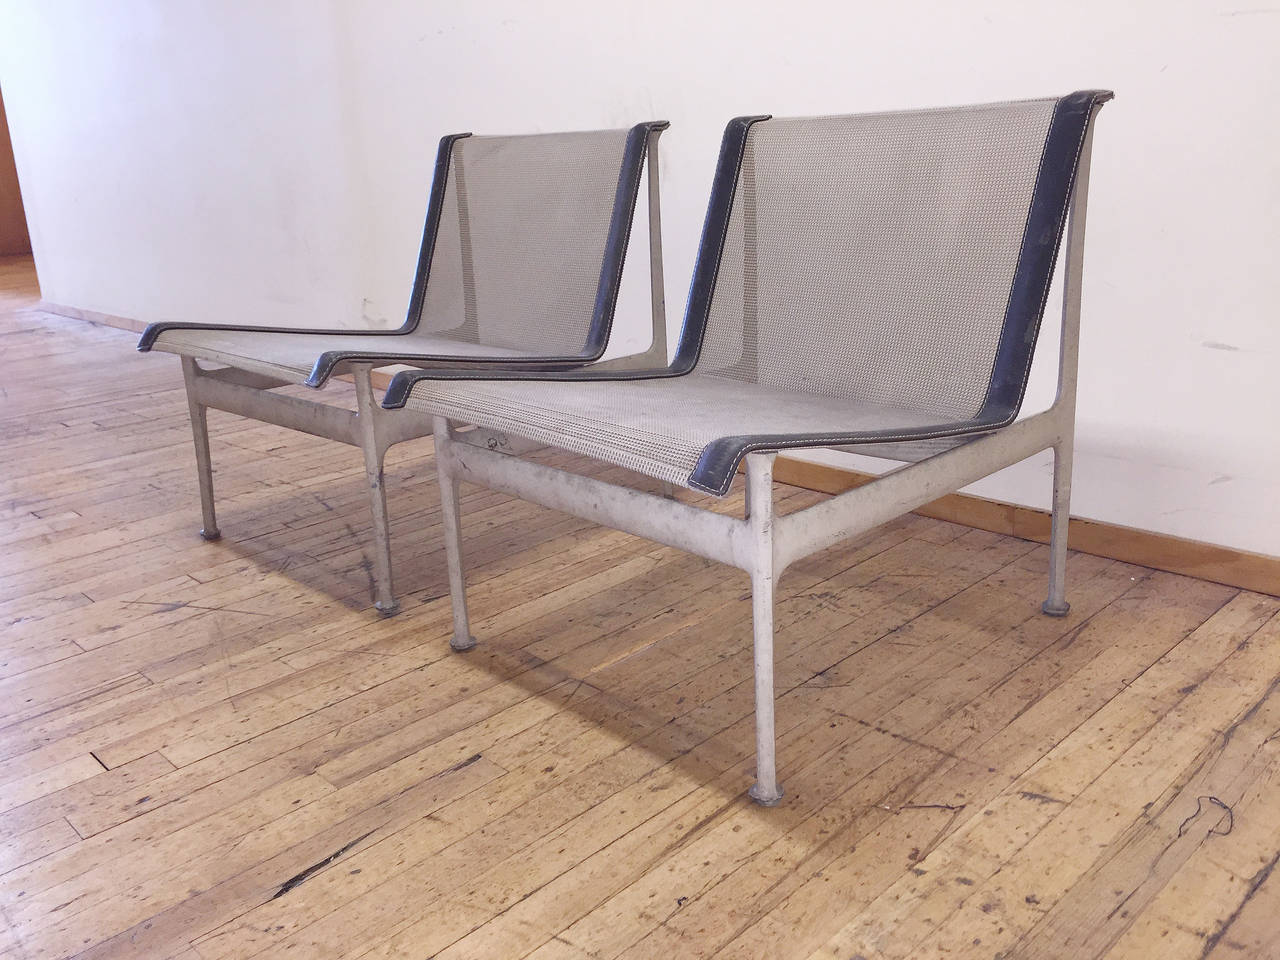 low outdoor chairs used folding tables and for sale original vintage richard schultz pair of lounge